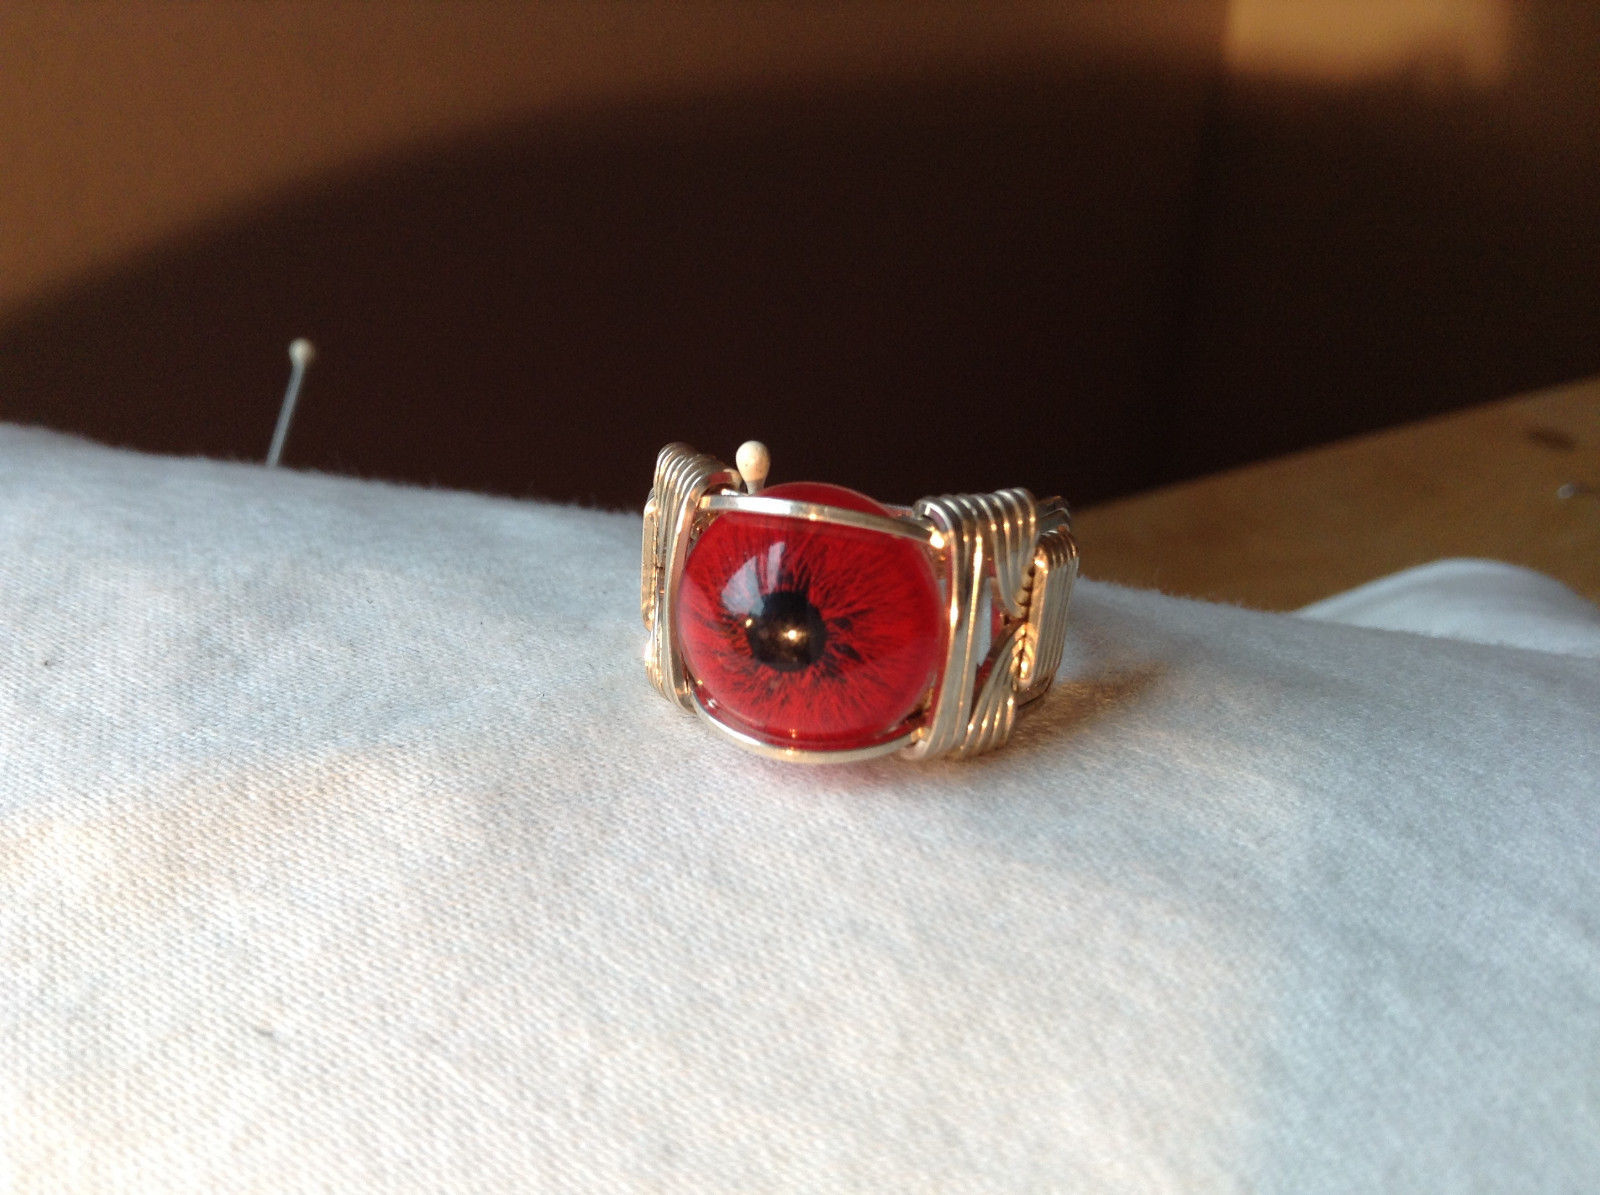 Red Eye Silver Tone Metal Wired Ring Size 7.75